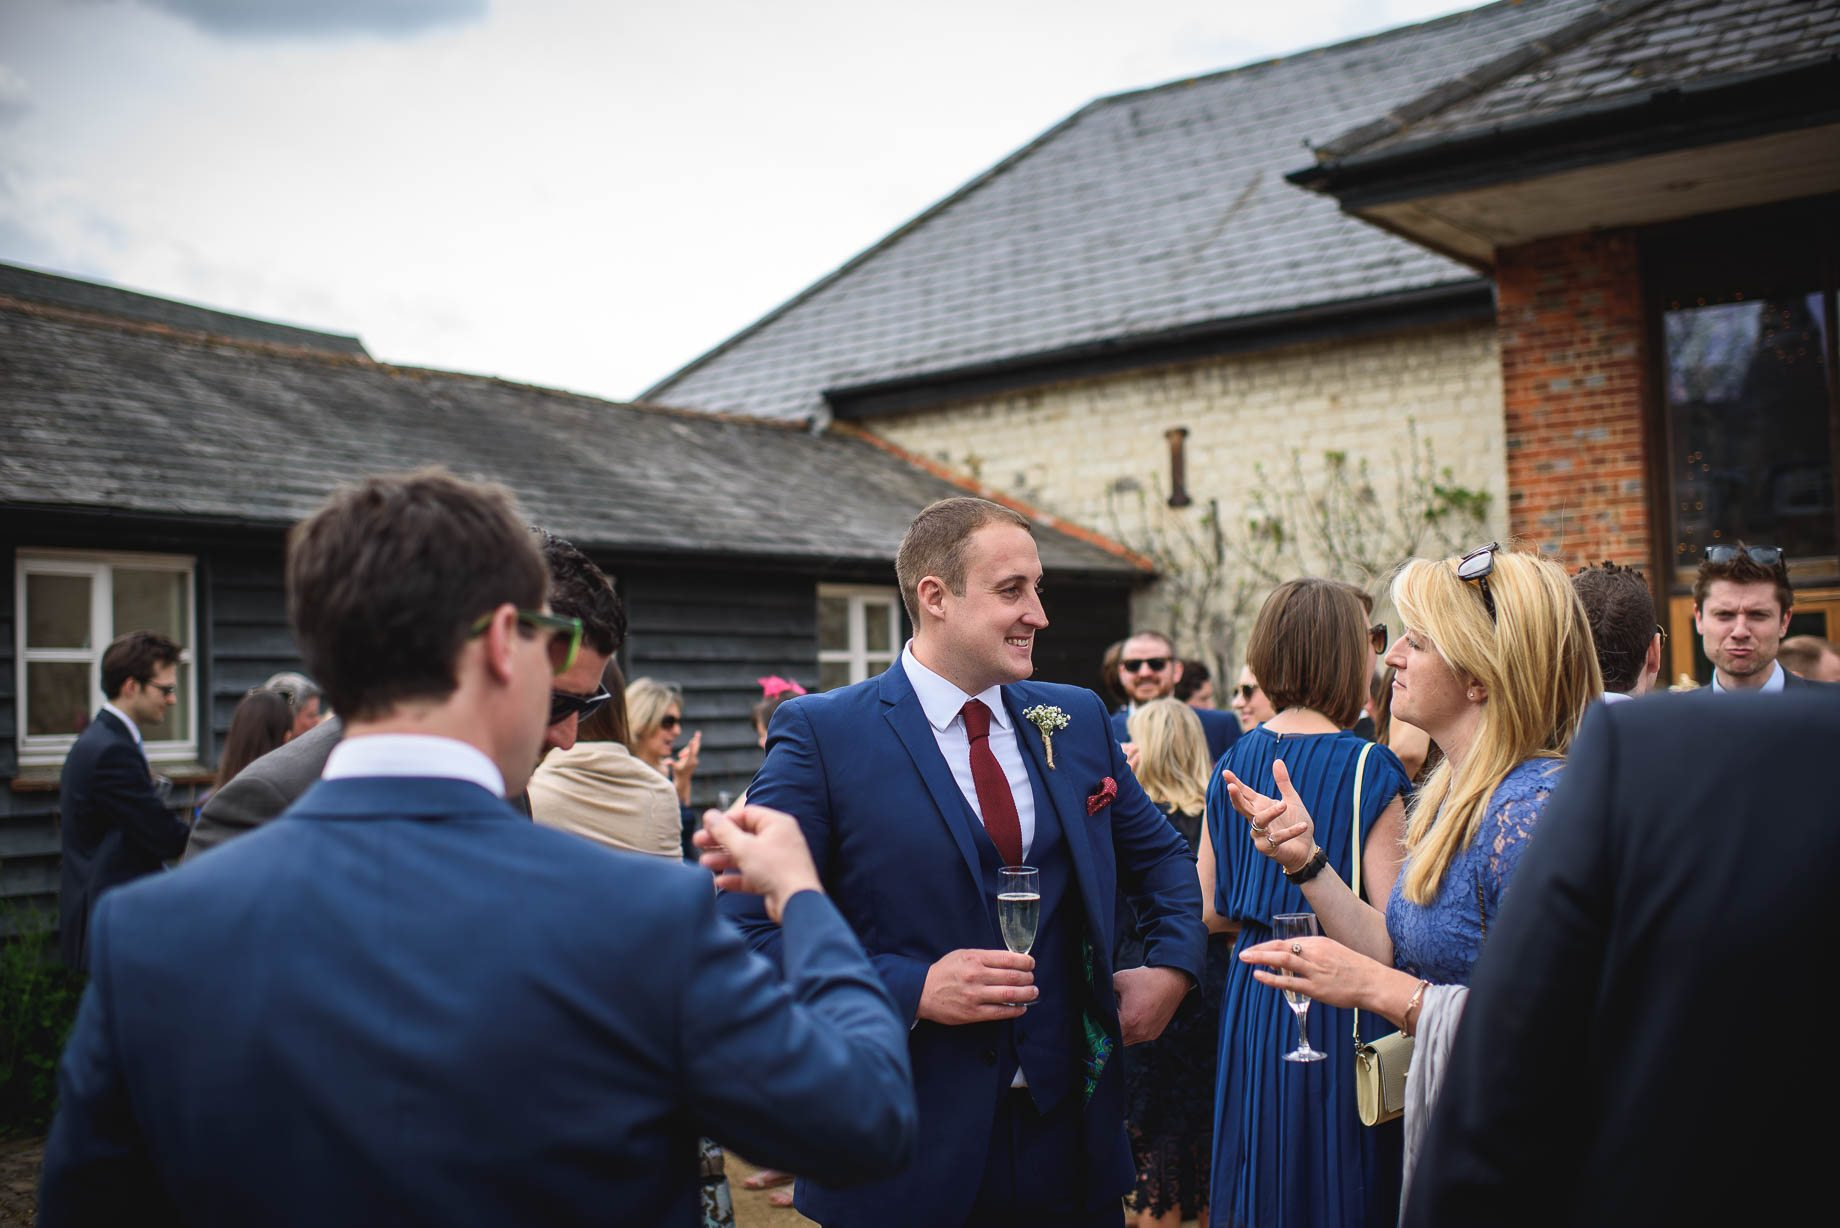 Bury Court Barn wedding photography by Guy Collier - Heather and Pat (81 of 170)